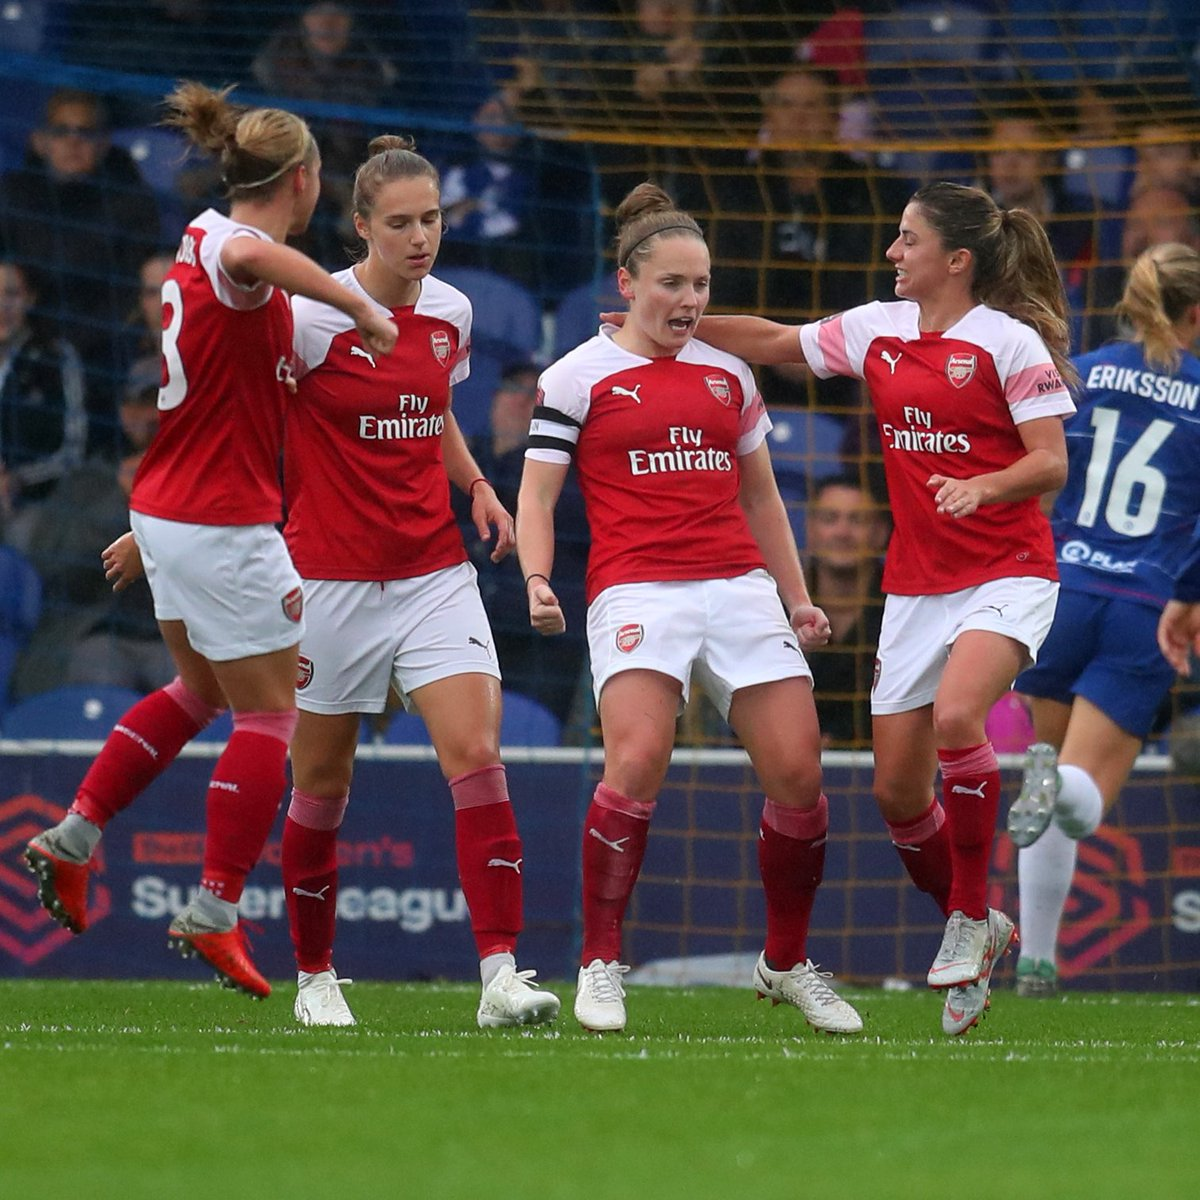 Full-time: Chelsea 0-5 Arsenal   We've maintained our place at the top of the  table thanks to goals from Kim Little,  (2) and  (2) 🔥  COME ON YOU GUNNERS! 👊